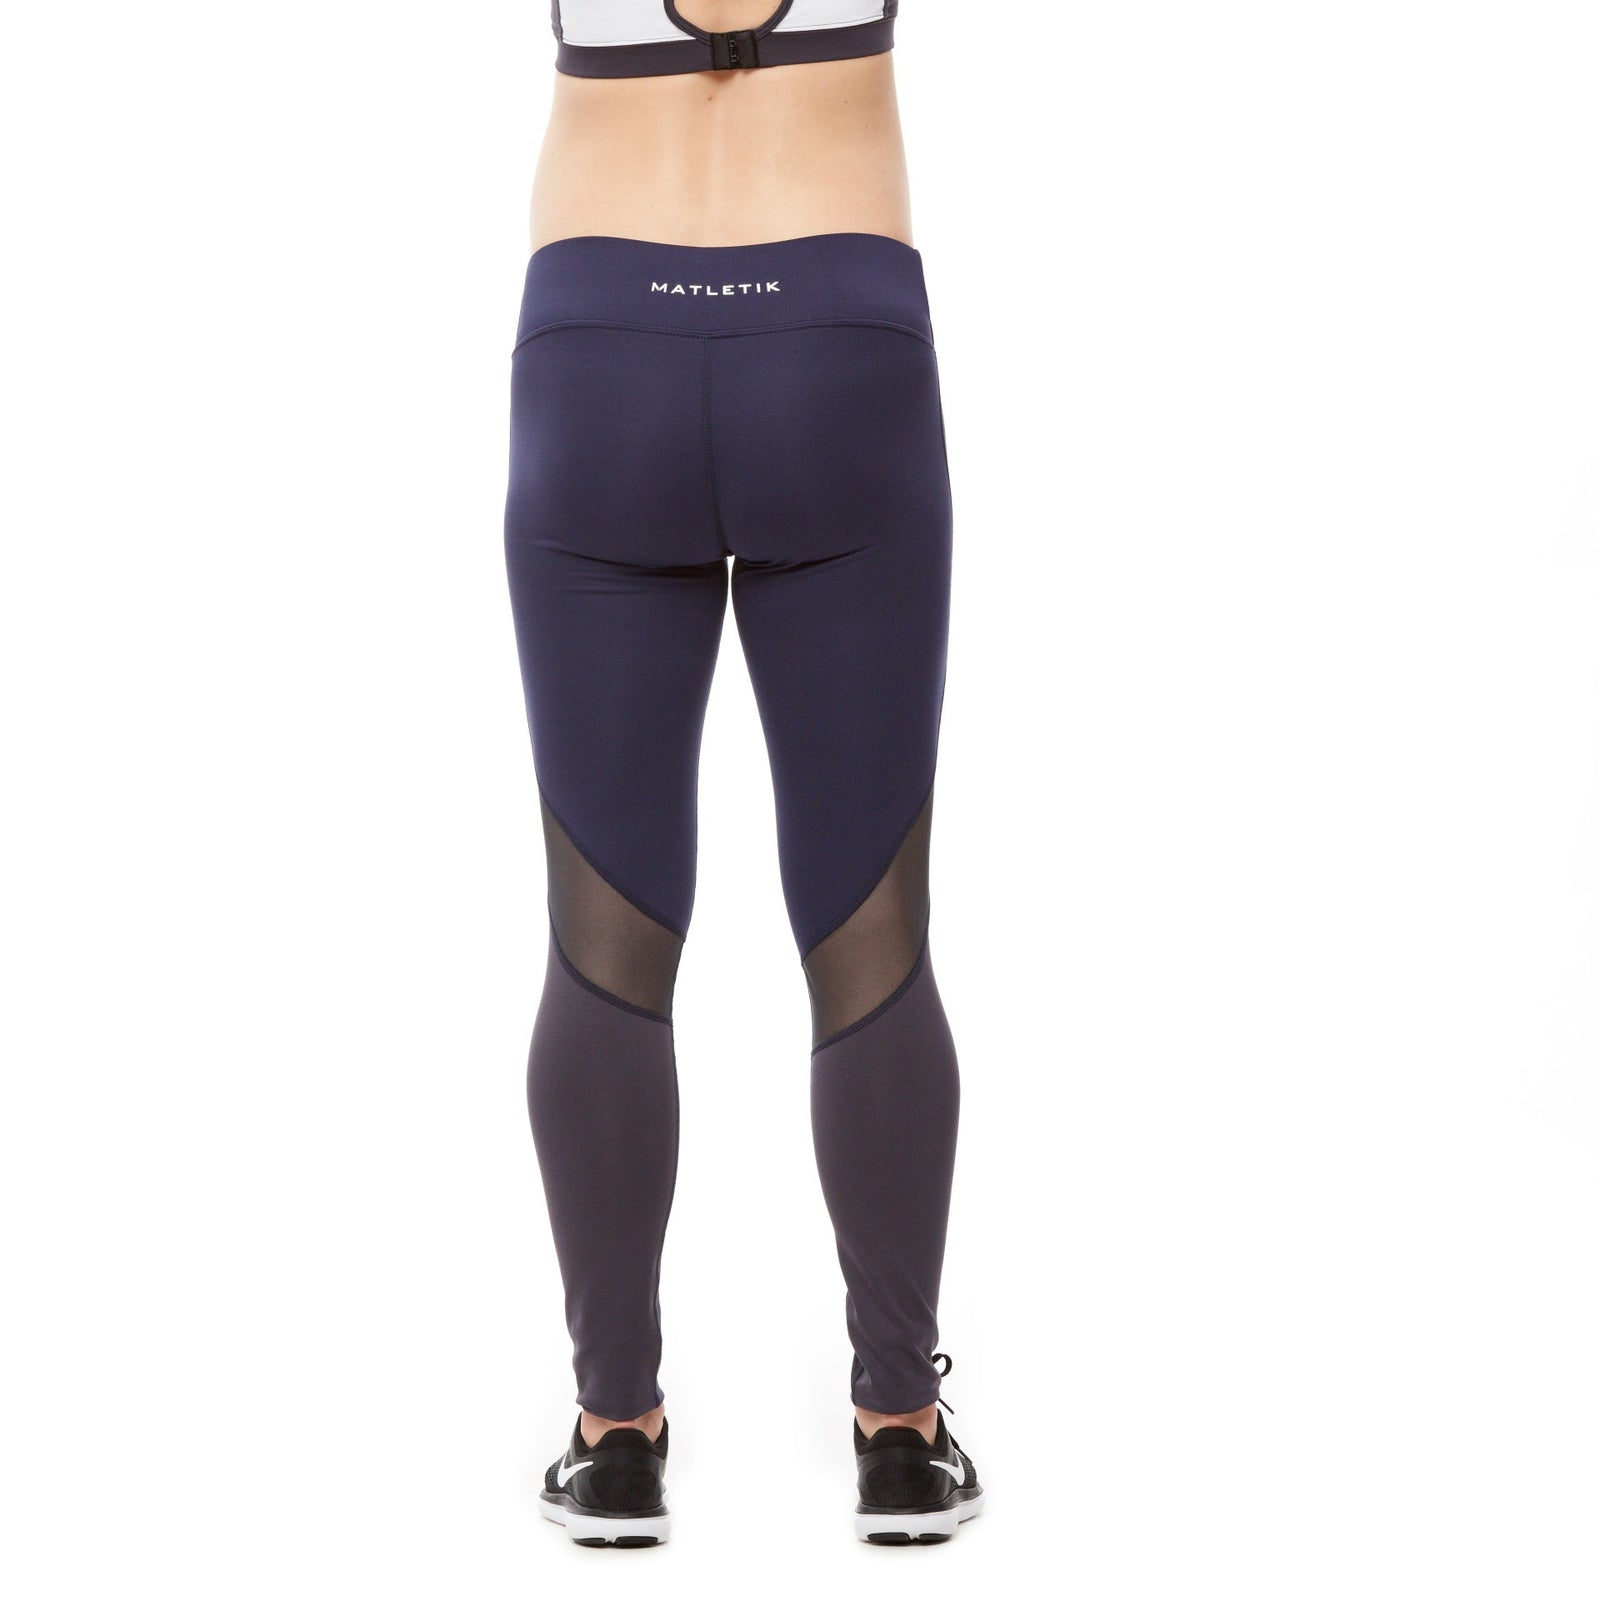 BRAVE LEGGING - Active full length mesh insert with mid waist